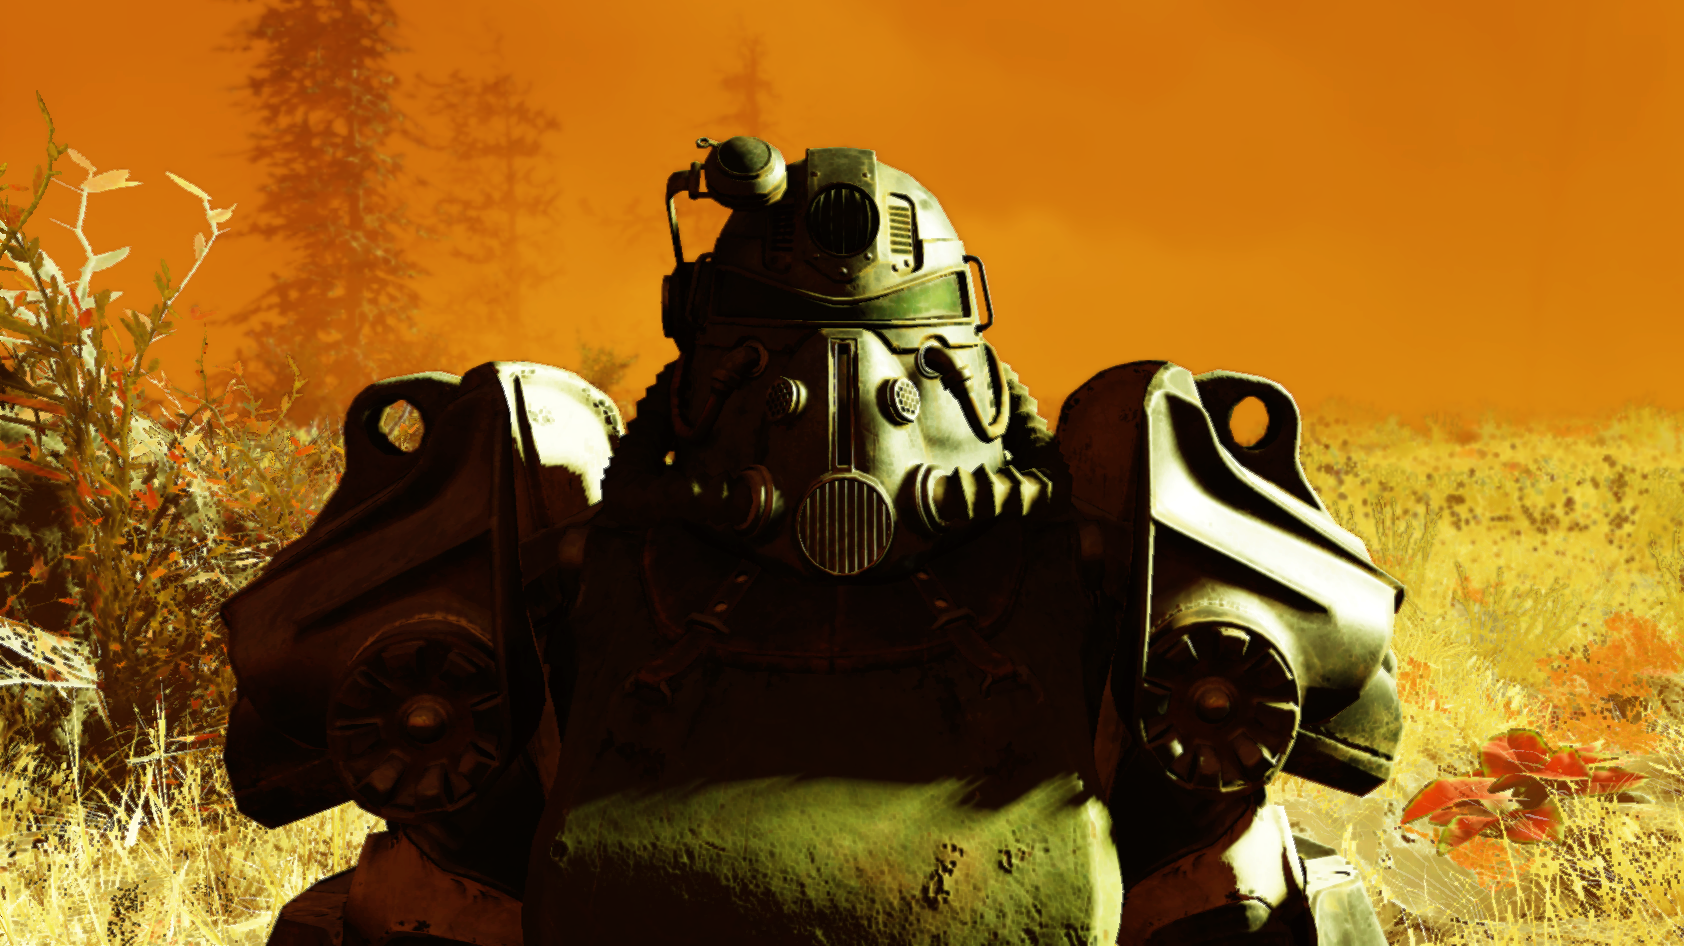 Fallout 76 Players Are Trying To Build The Social Hubs They Have Been Begging For